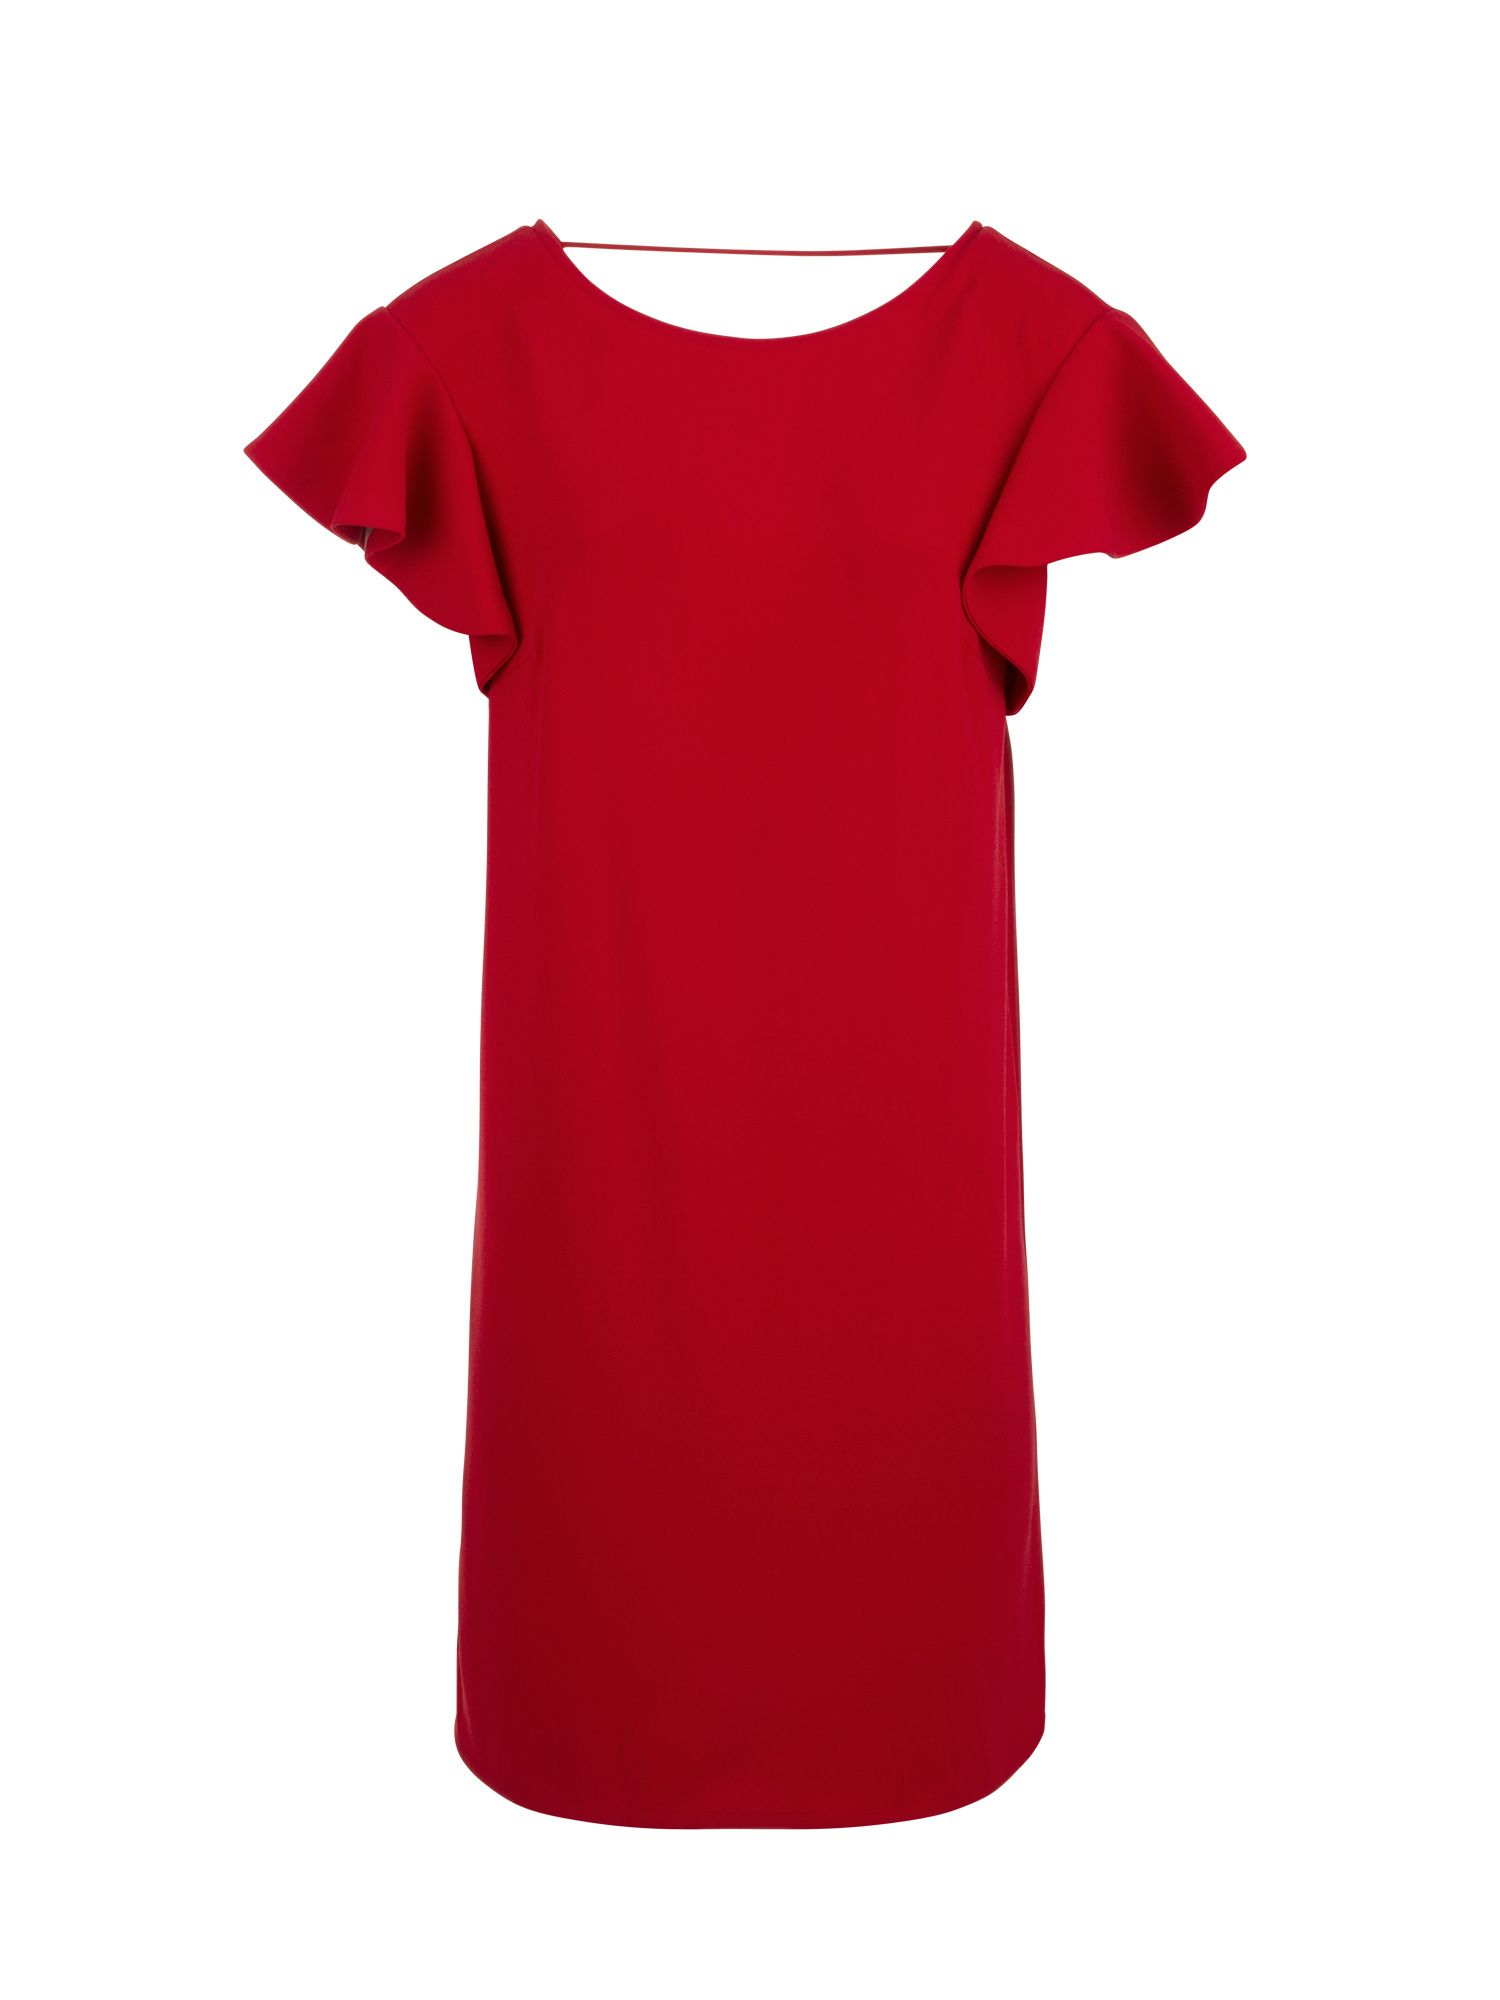 Morgan Crepe Dress With Ruffled Sleeves, Red